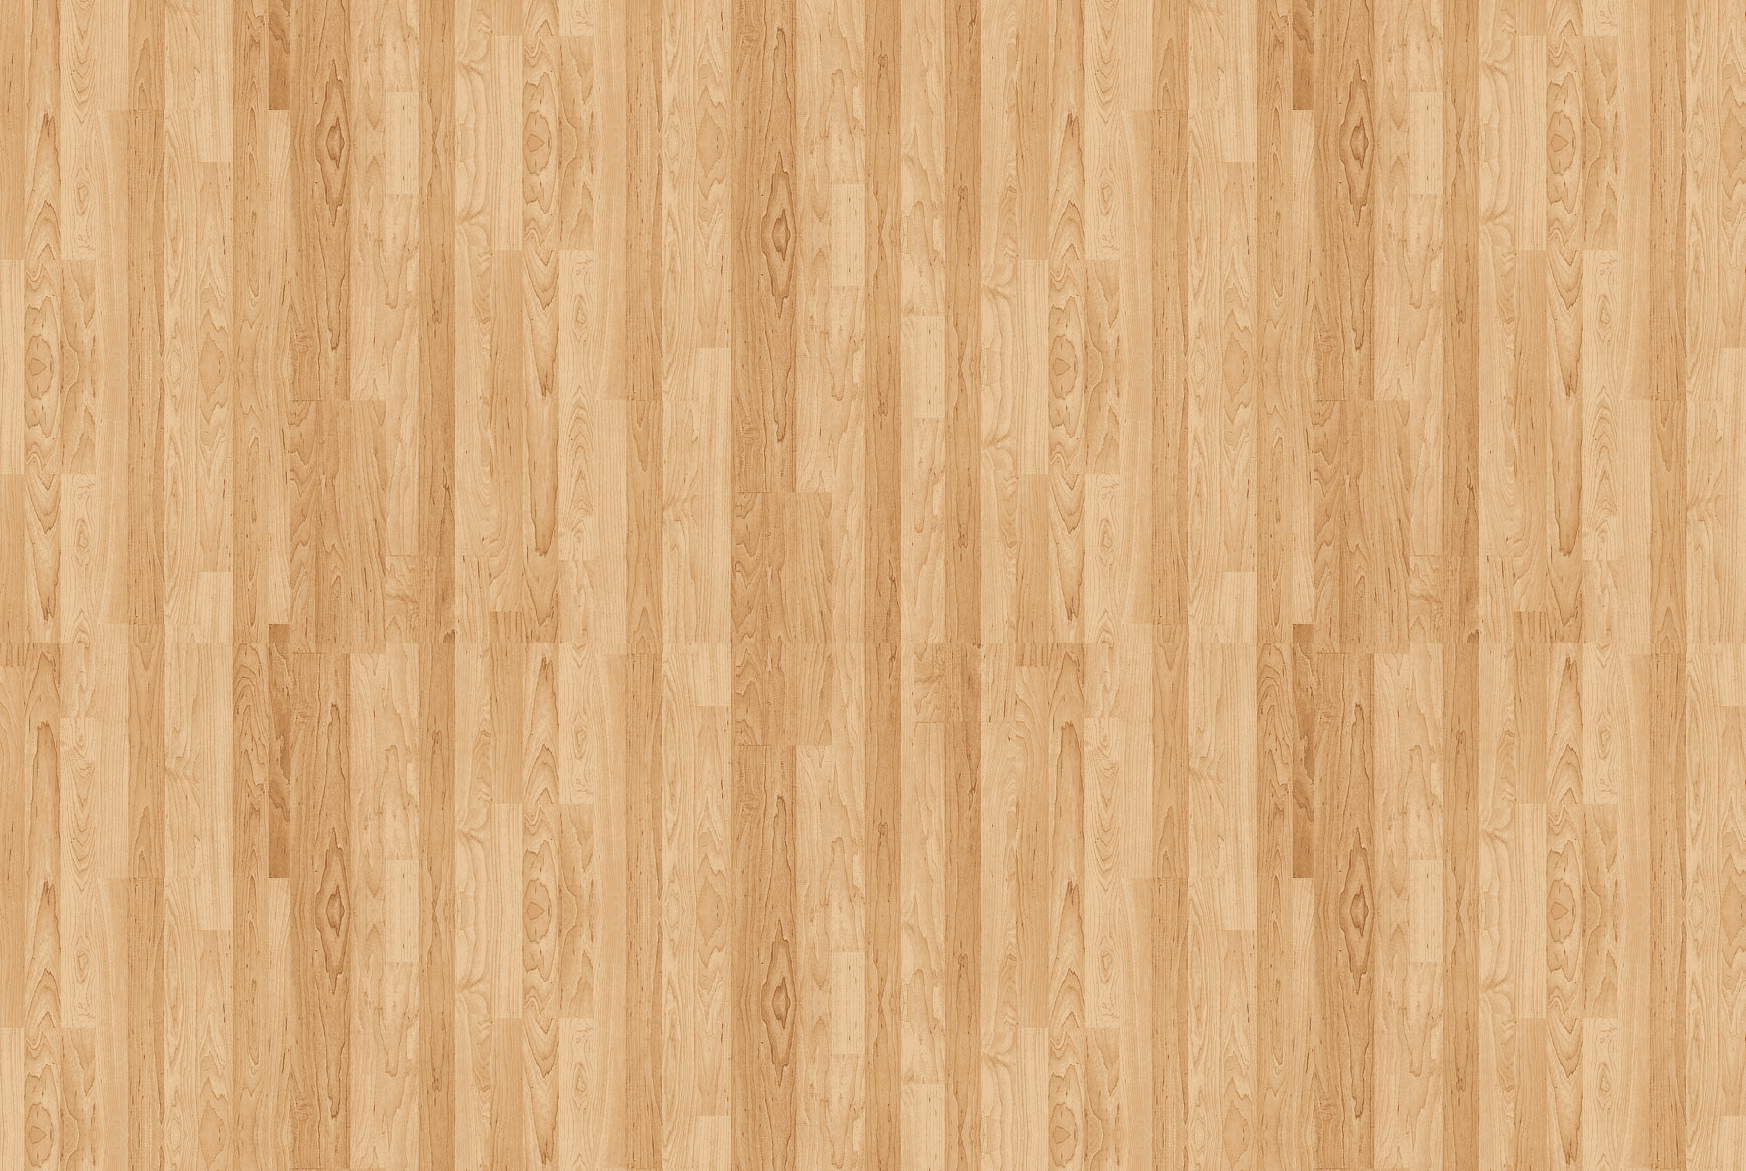 Wood background png design pinterest wood background for 3d wood wallpaper